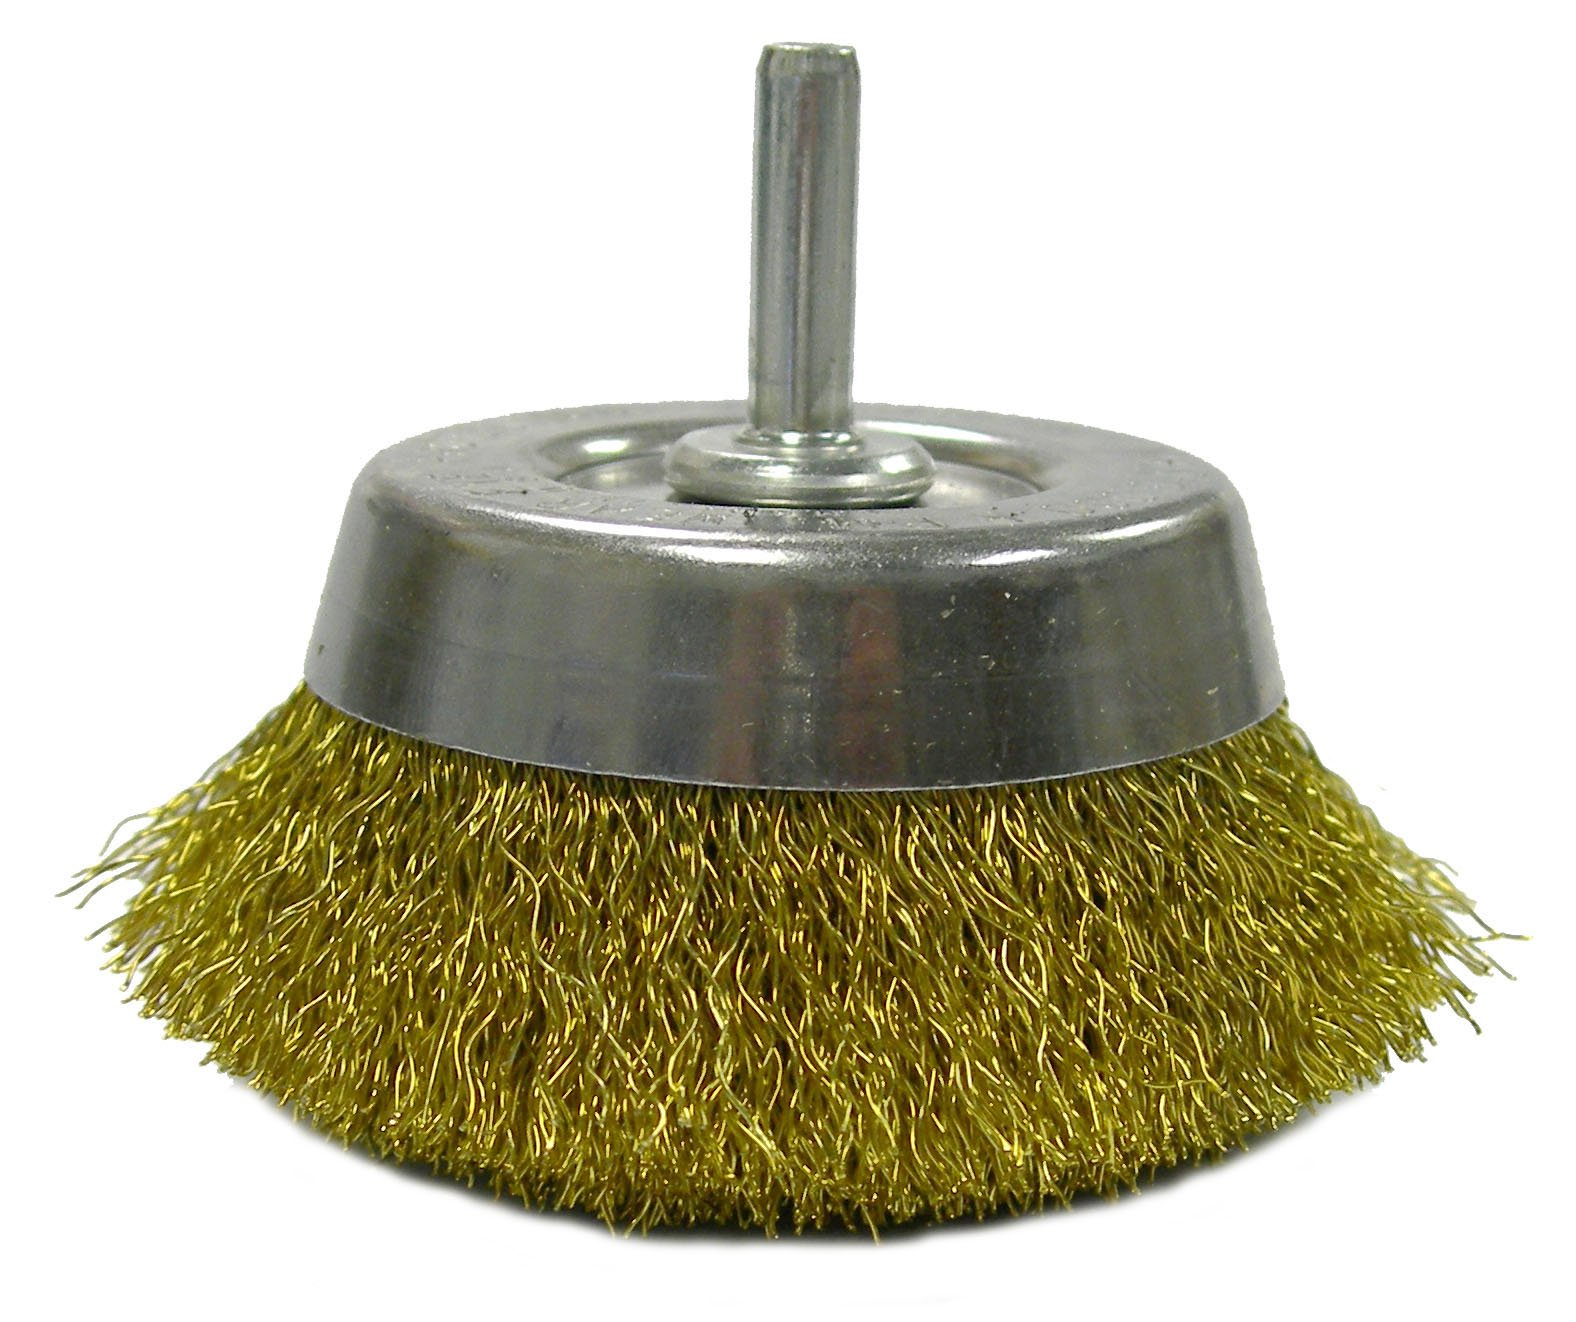 Weiler 14311 Crimped Wire Utility Cup Brush, 2-3/4'', 0.118'' Brass Fill, 1/4'' Stem